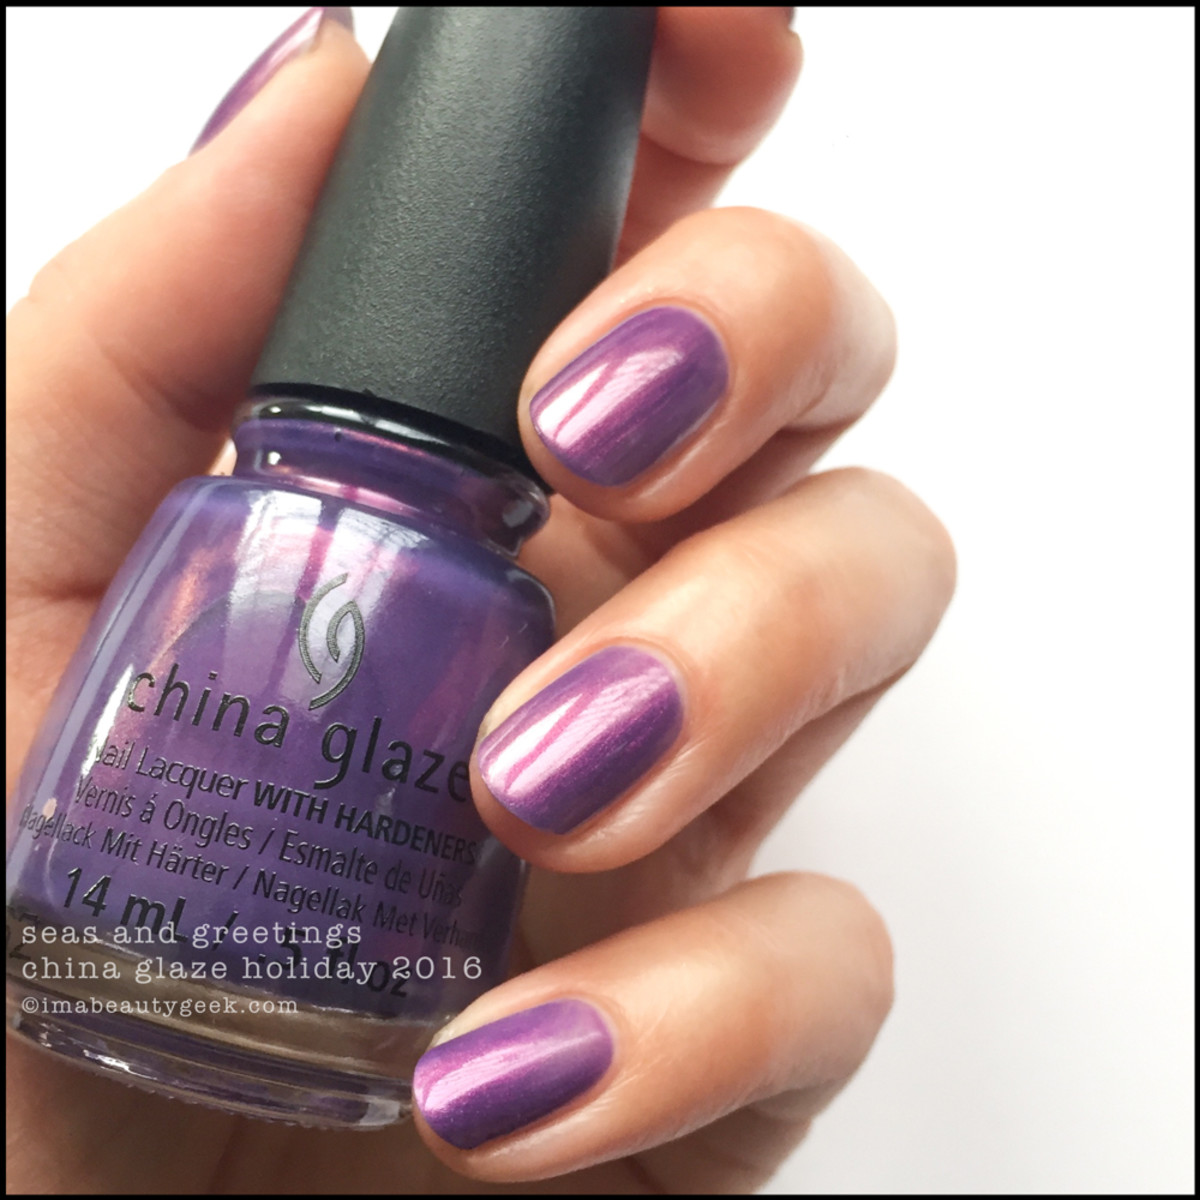 China Glaze Seas and Greetings Holiday 2016